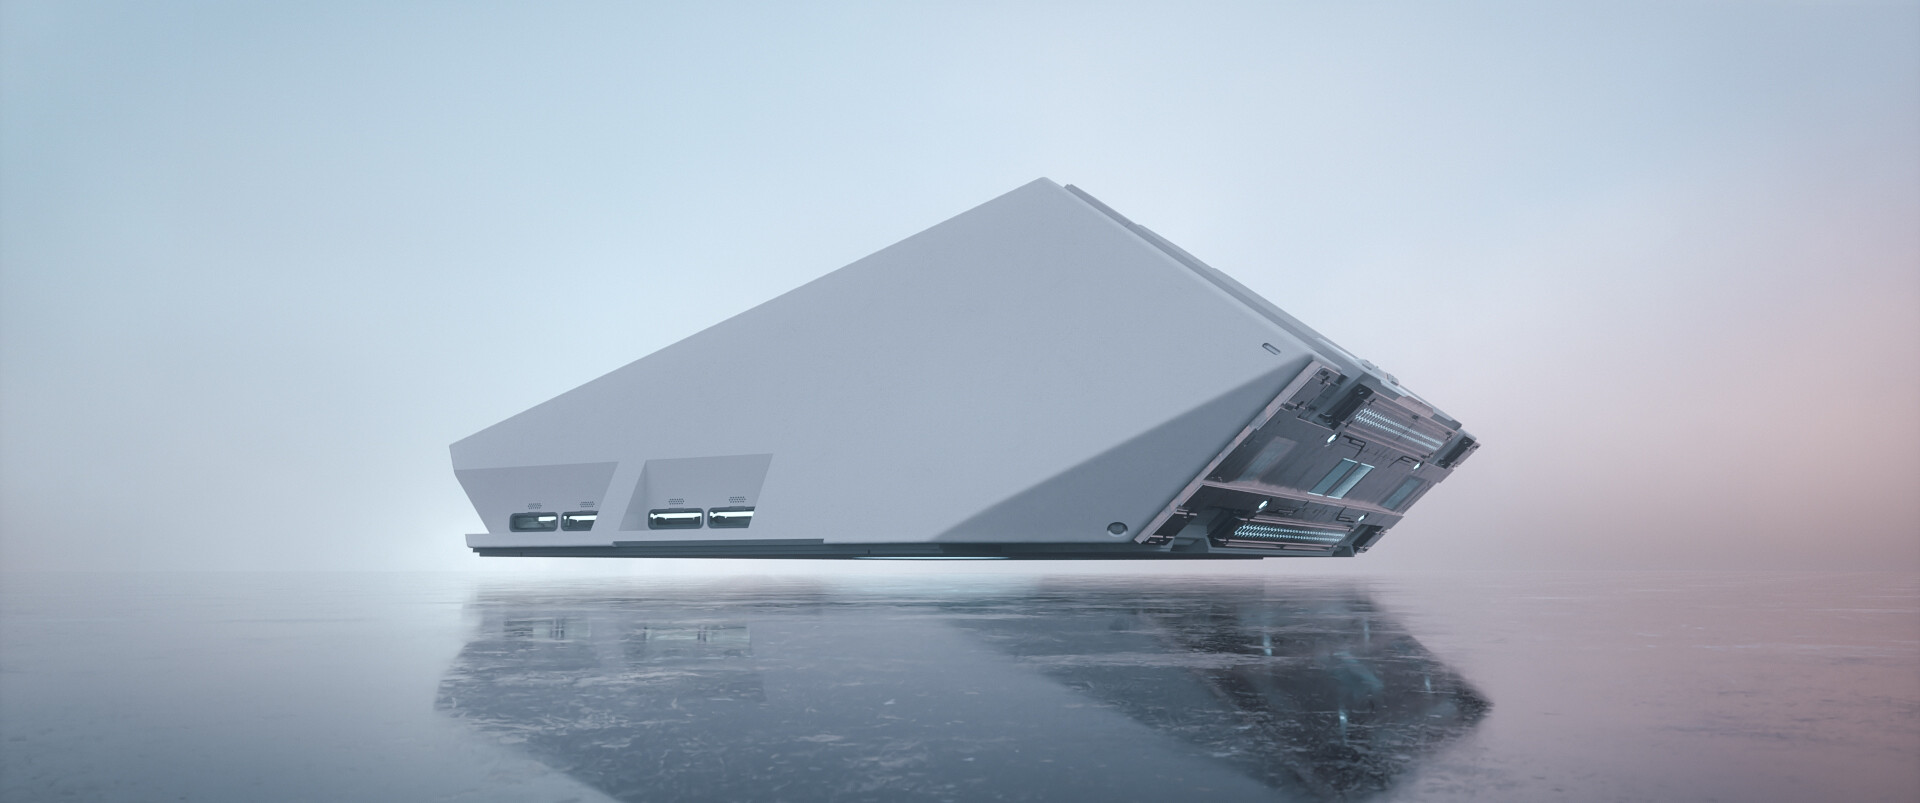 Mark chang 0 0002 floating building v3